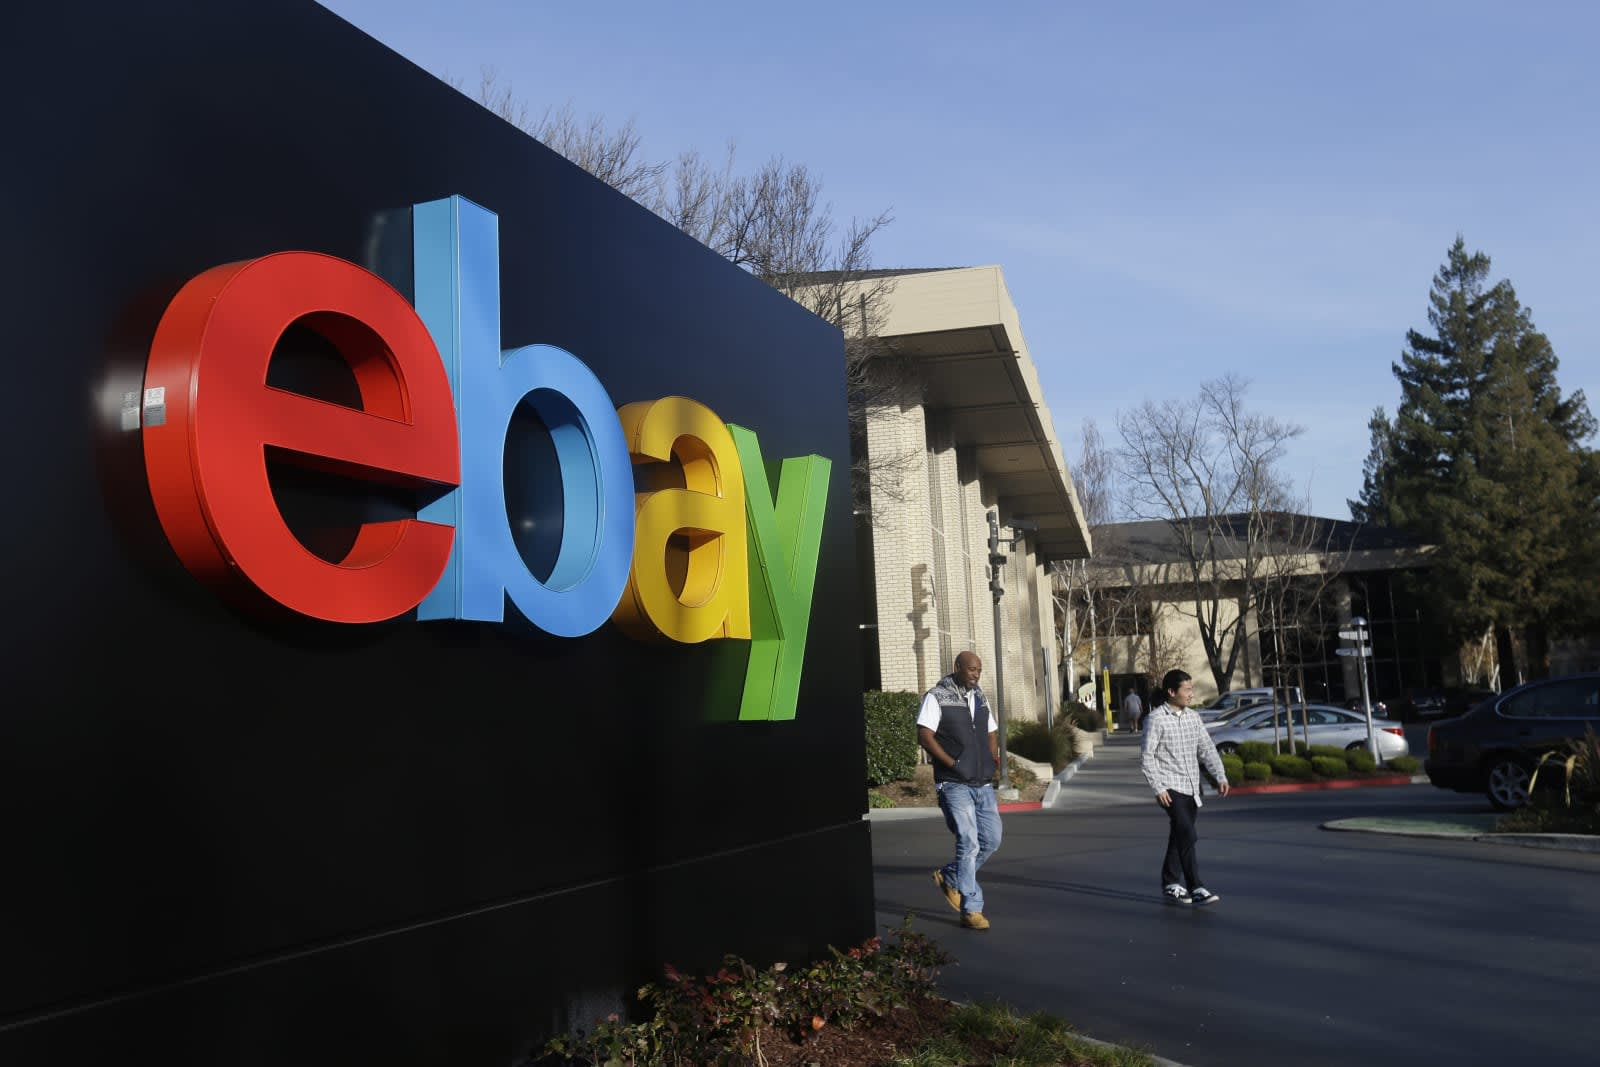 eBay, Visa and Mastercard pull out of Facebook's Libra cryptocurrency